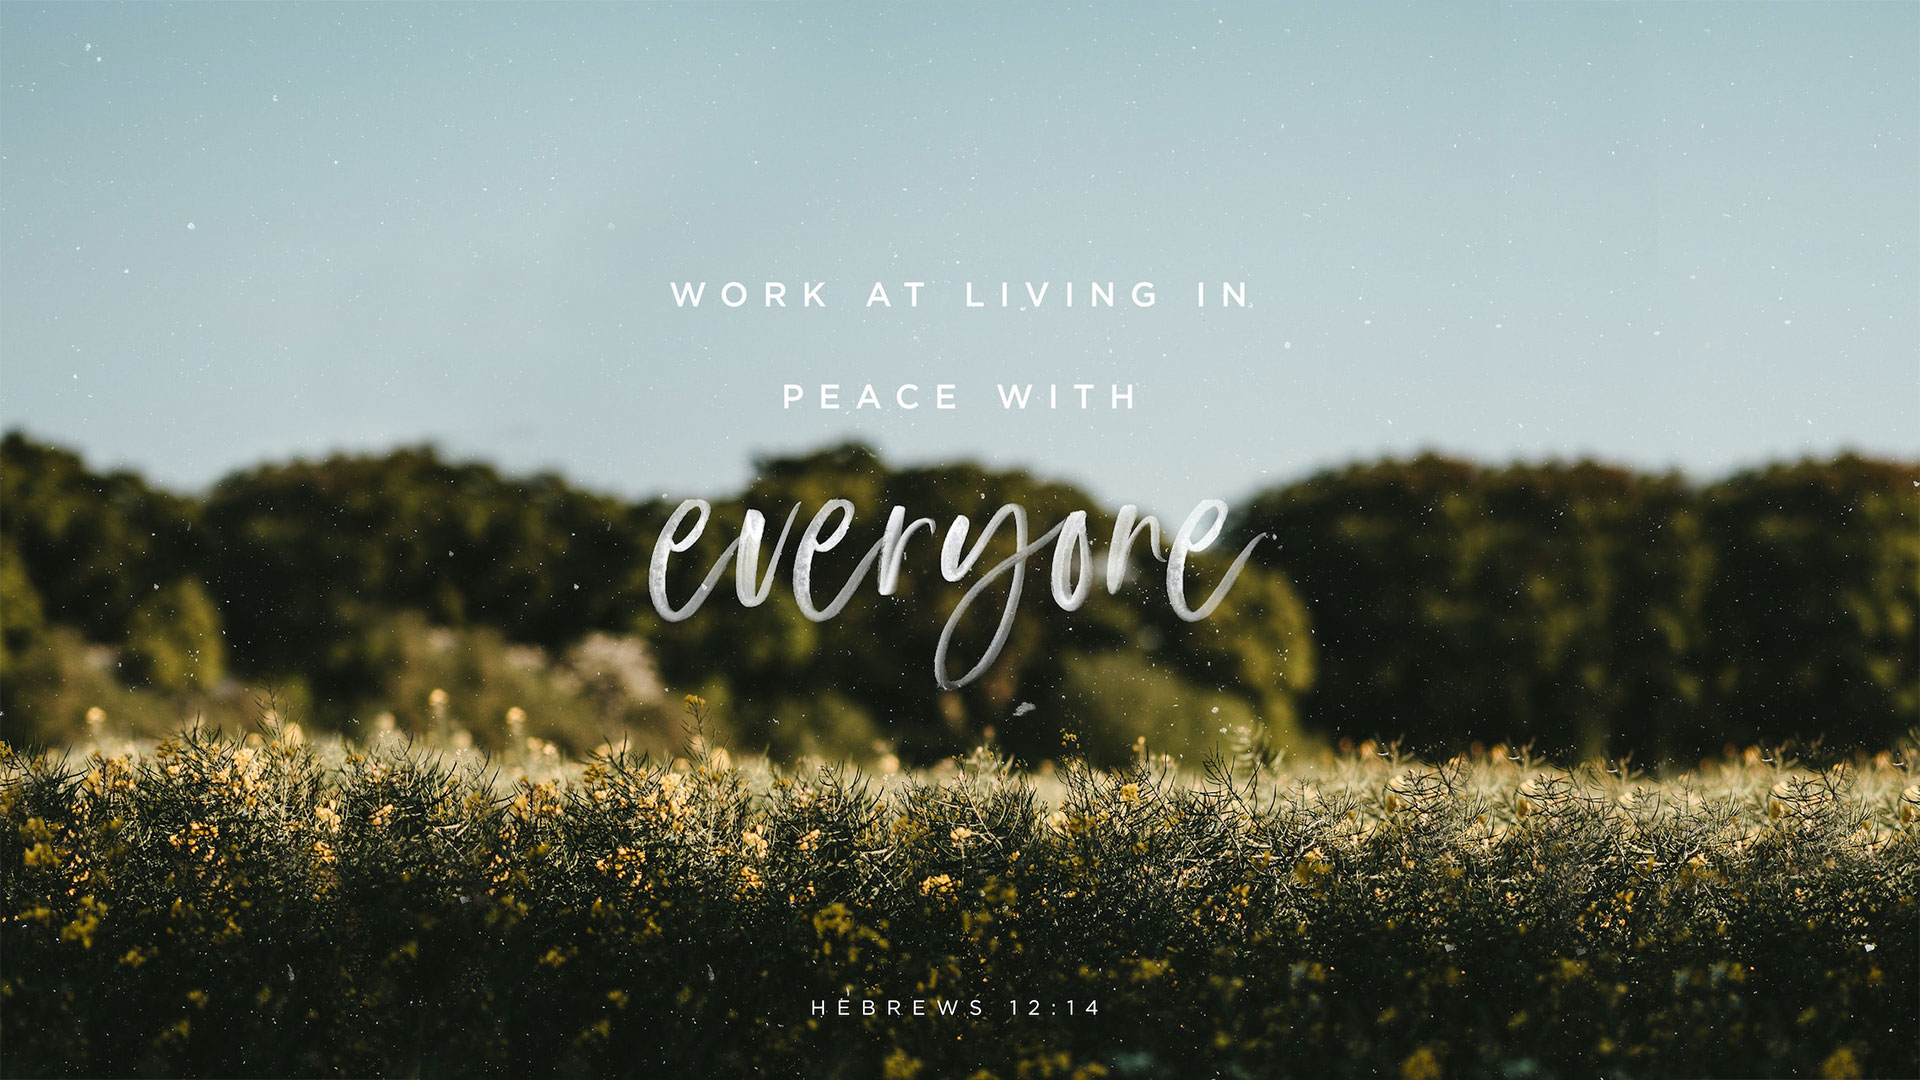 Work at living in peace with everyone.